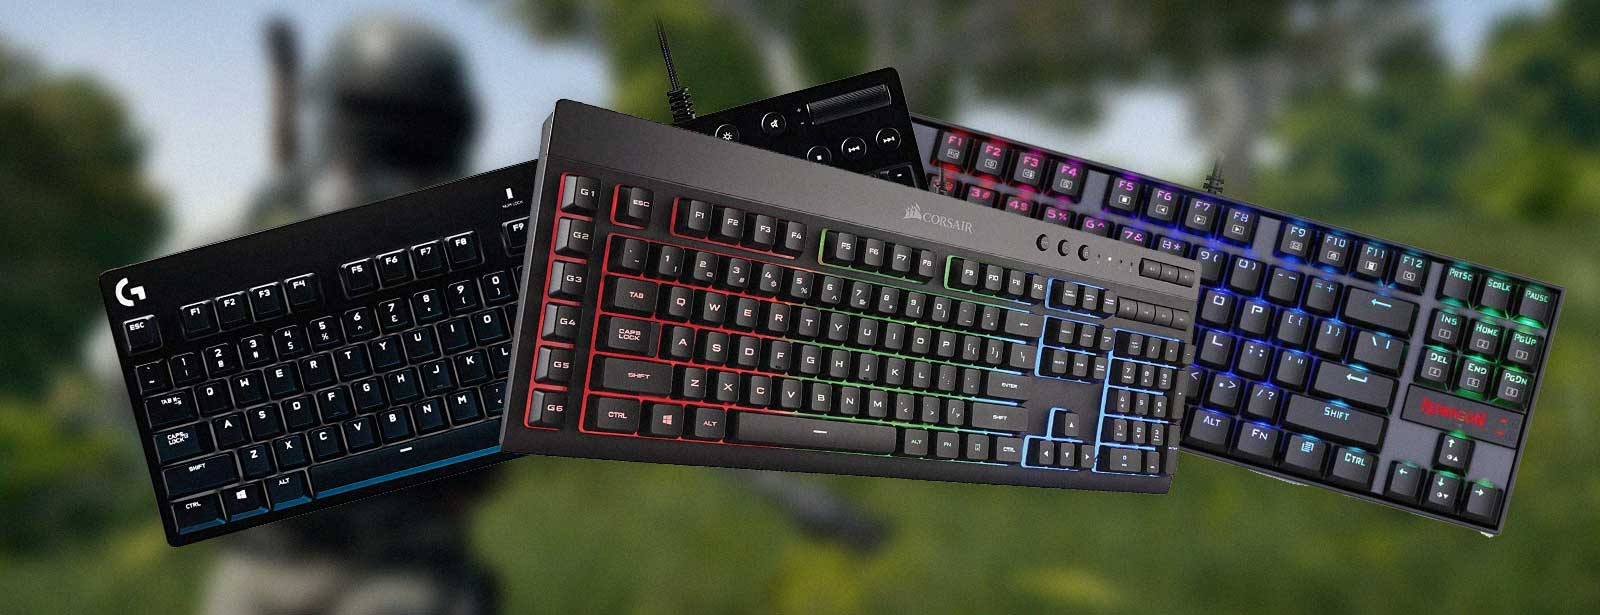 Best Gaming Keyboards Under 100 For 2019 Reviewed August